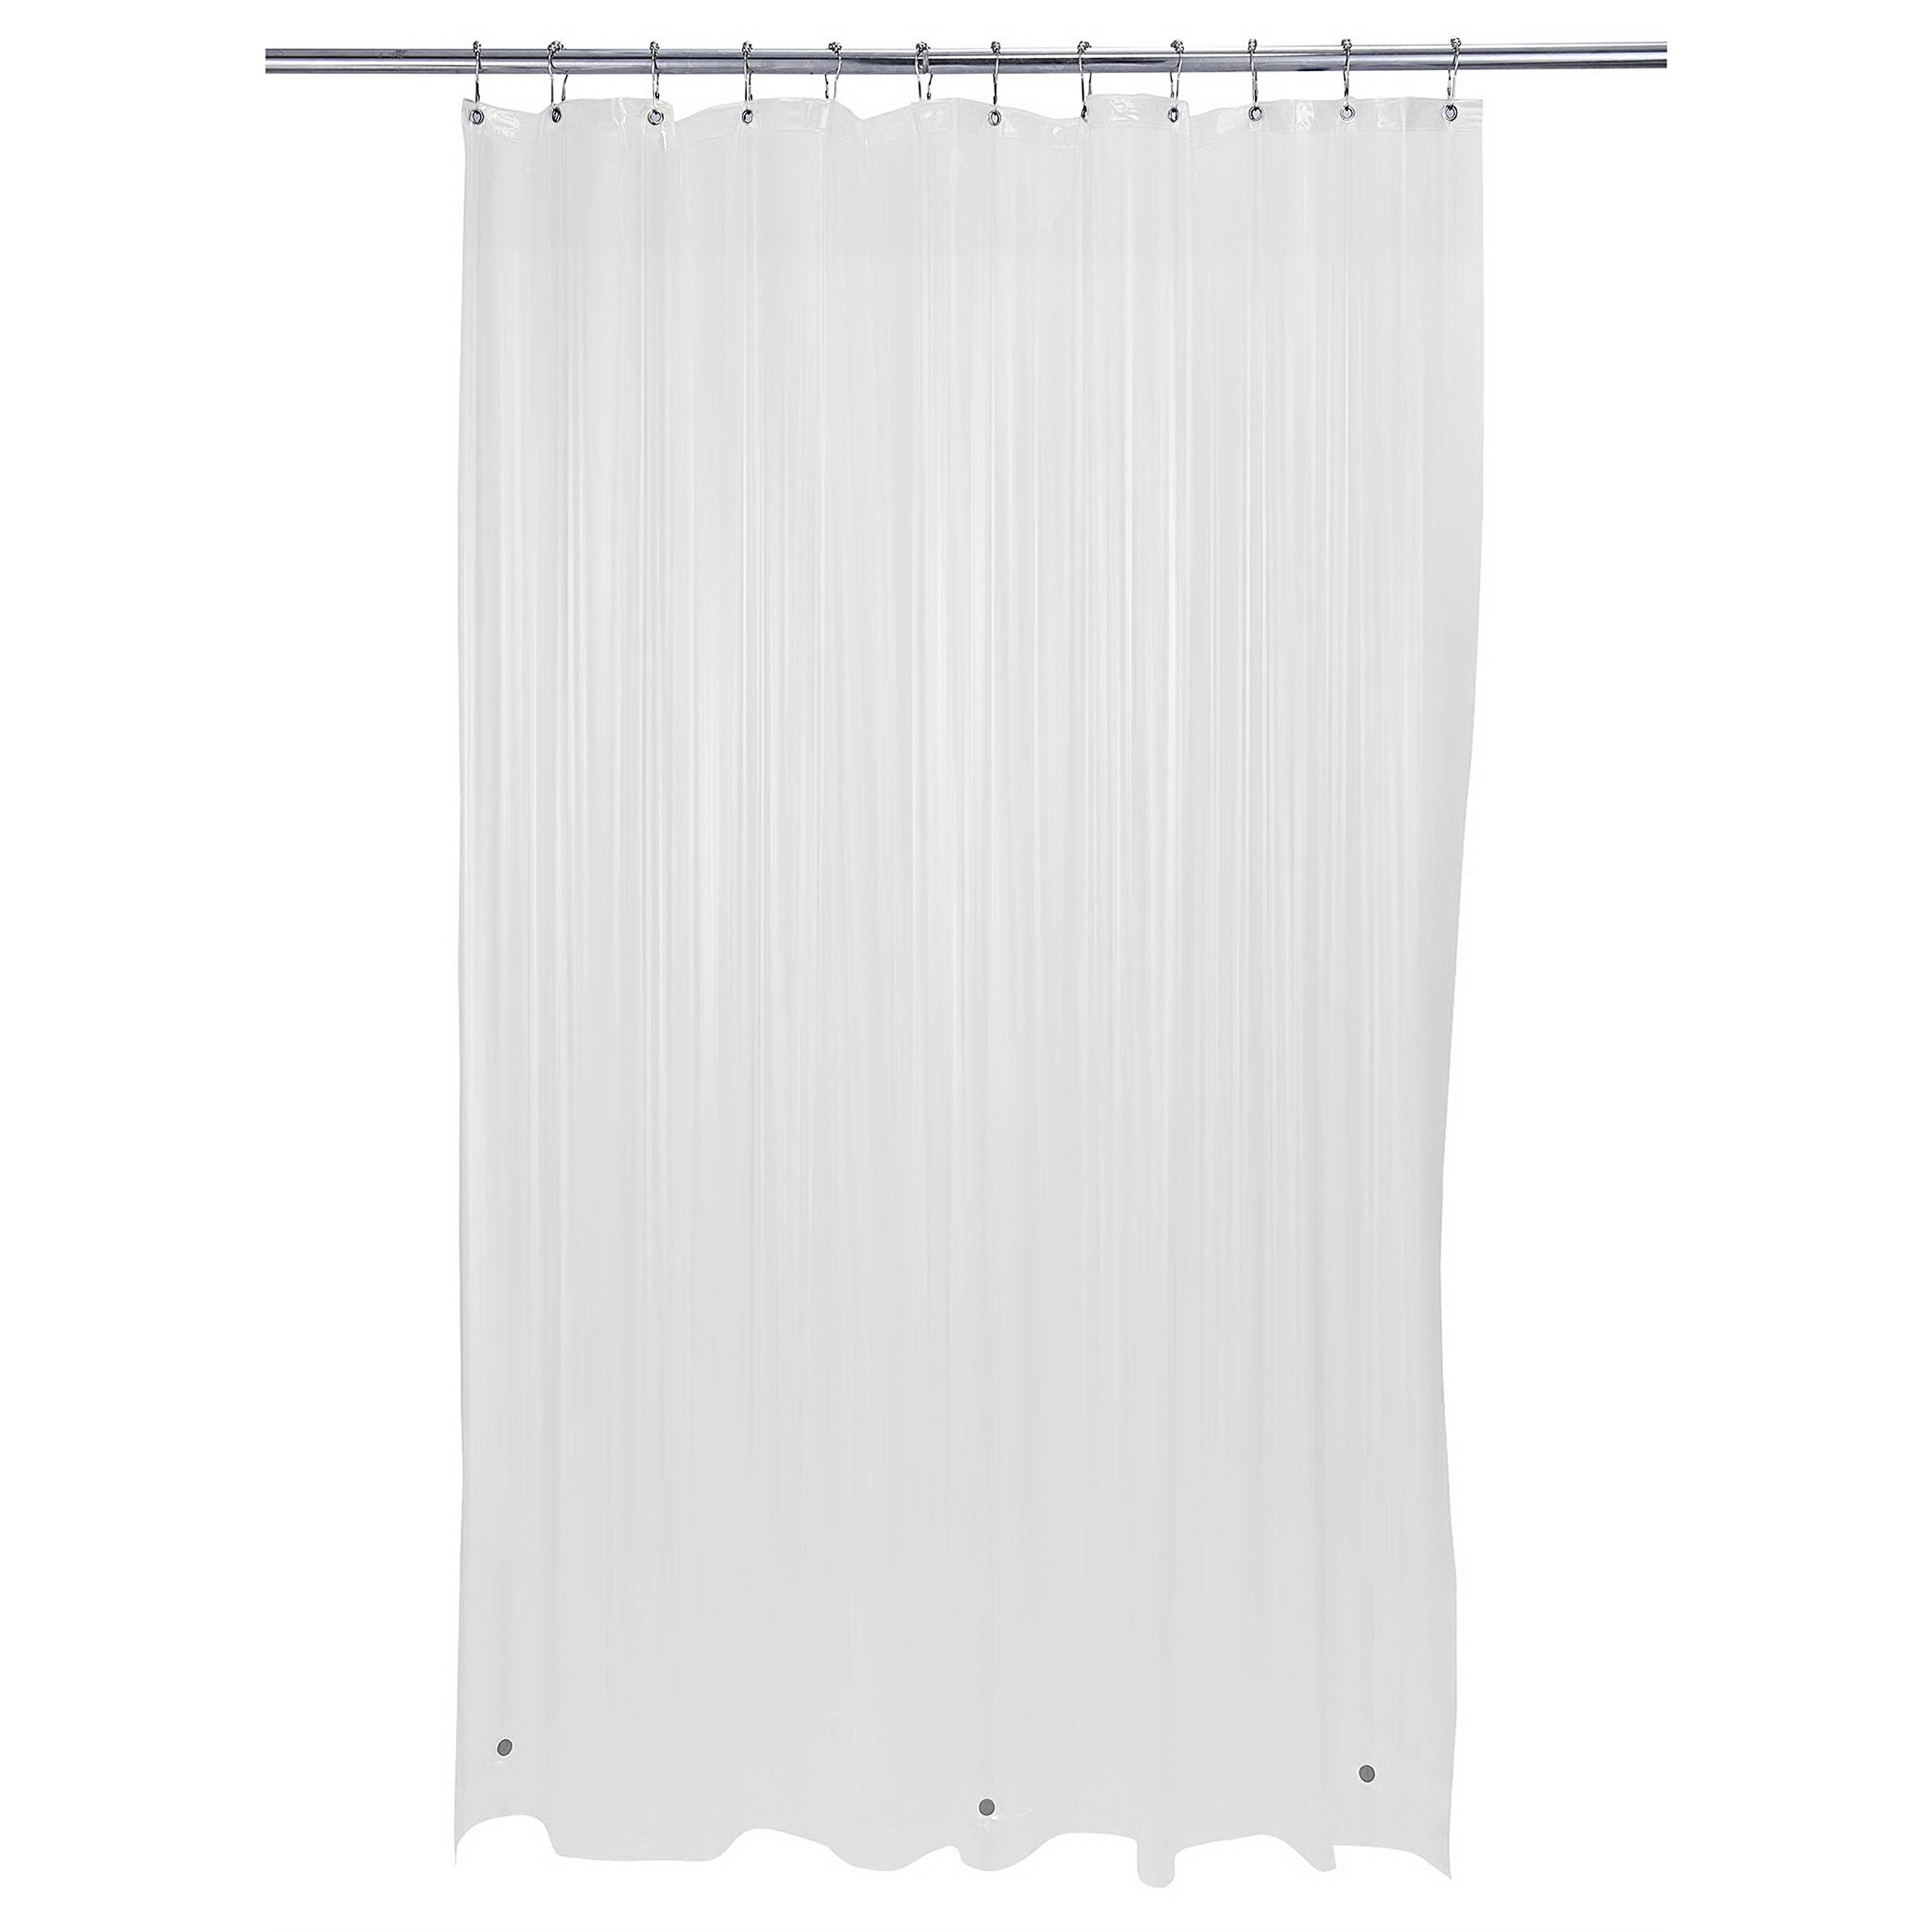 Bath Bliss Heavy Shower Curtain Liner, 12 Rust Resistant Metal Grommets, 3 Weighted Magnet Hem, Frost Off-White